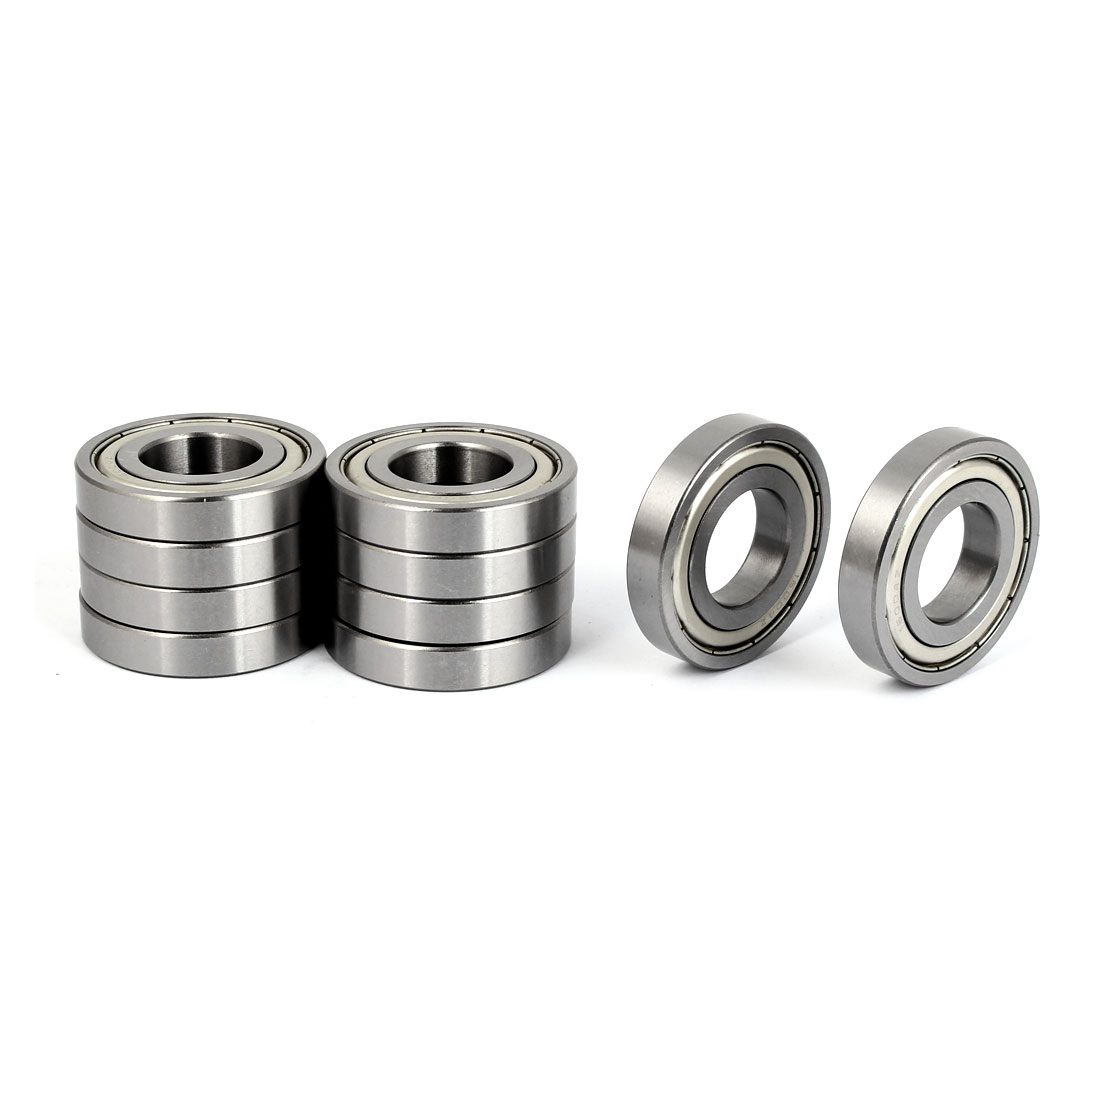 ZZ16004 Sealed Deep Groove Ball Bearing 42mmx20mmx8mm 10pcs